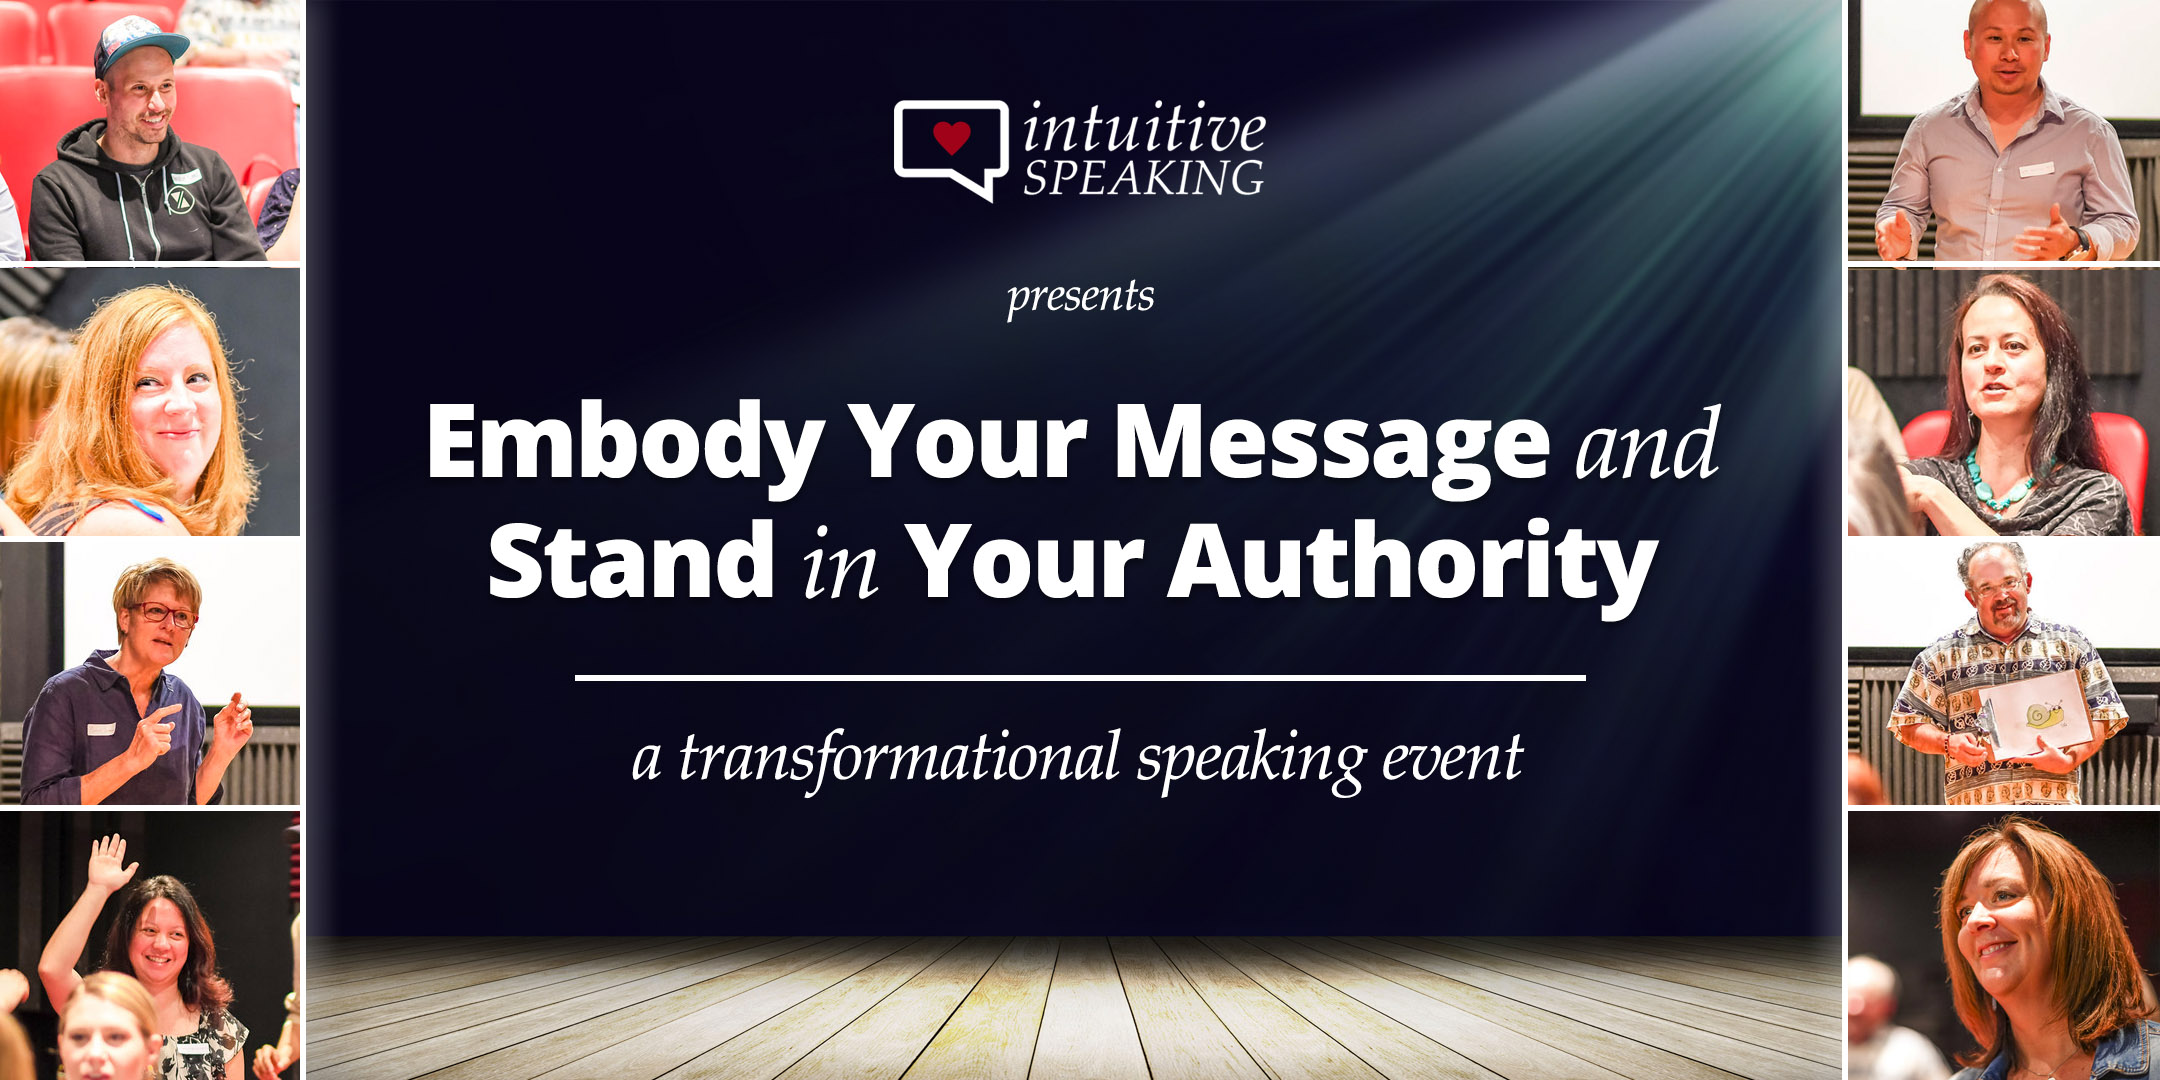 Intuitive Speaking - Embody Your Message